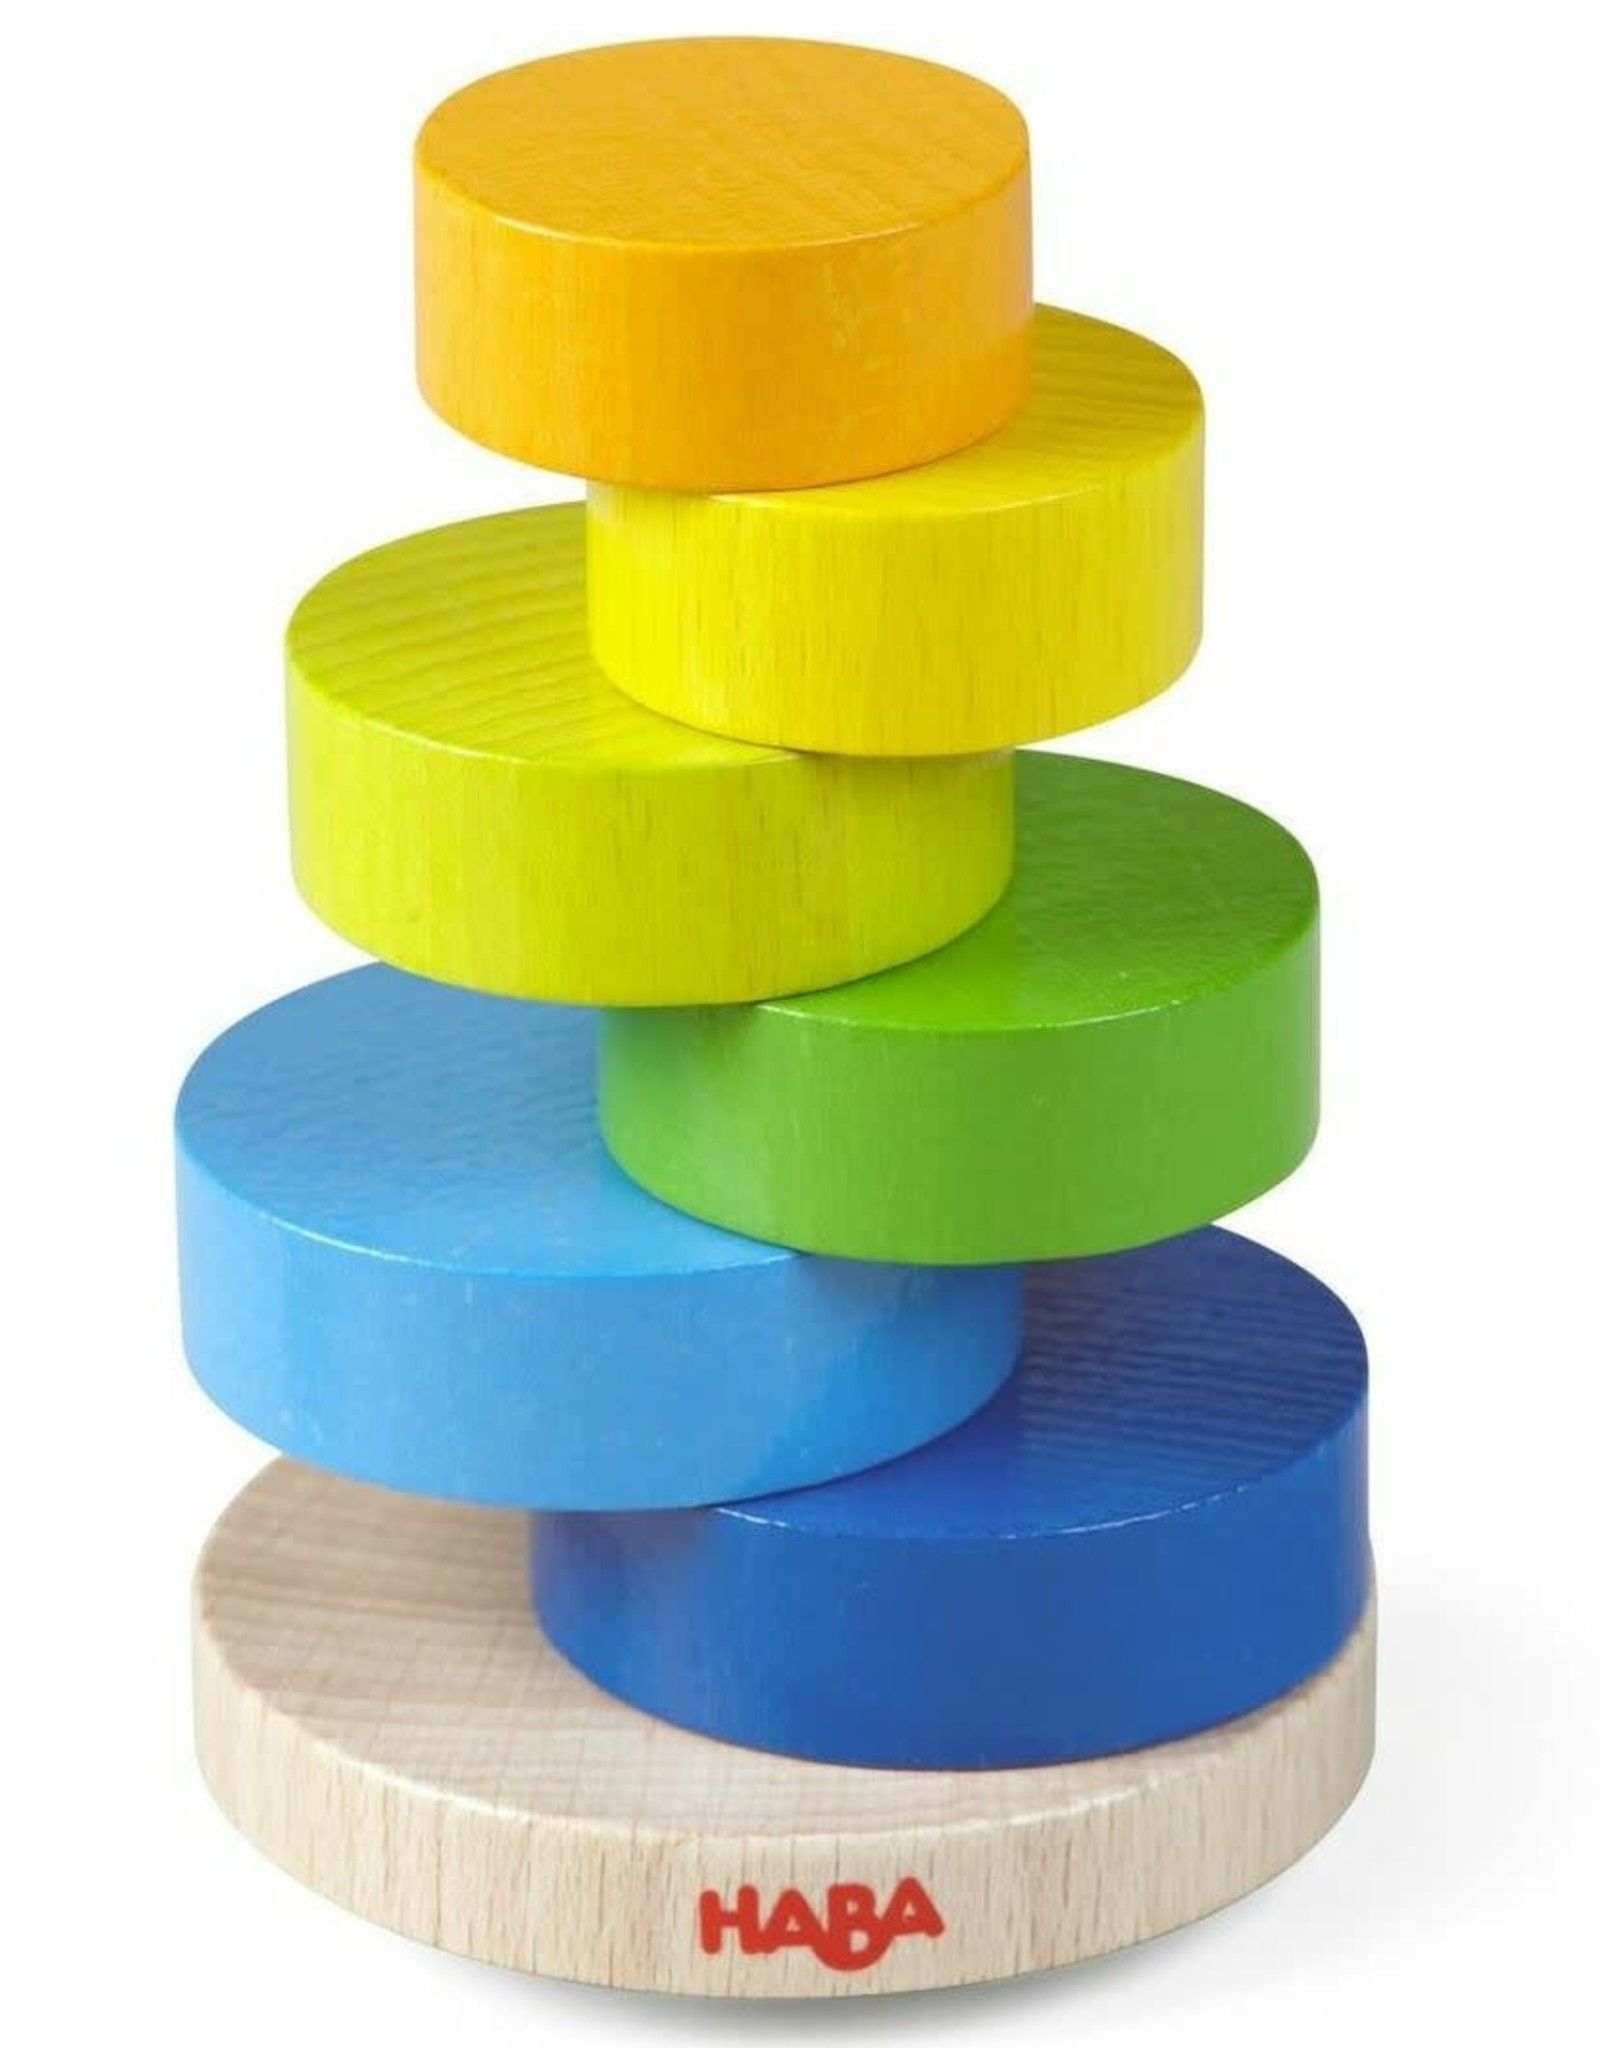 Haba Wobbly Tower Stacking Game